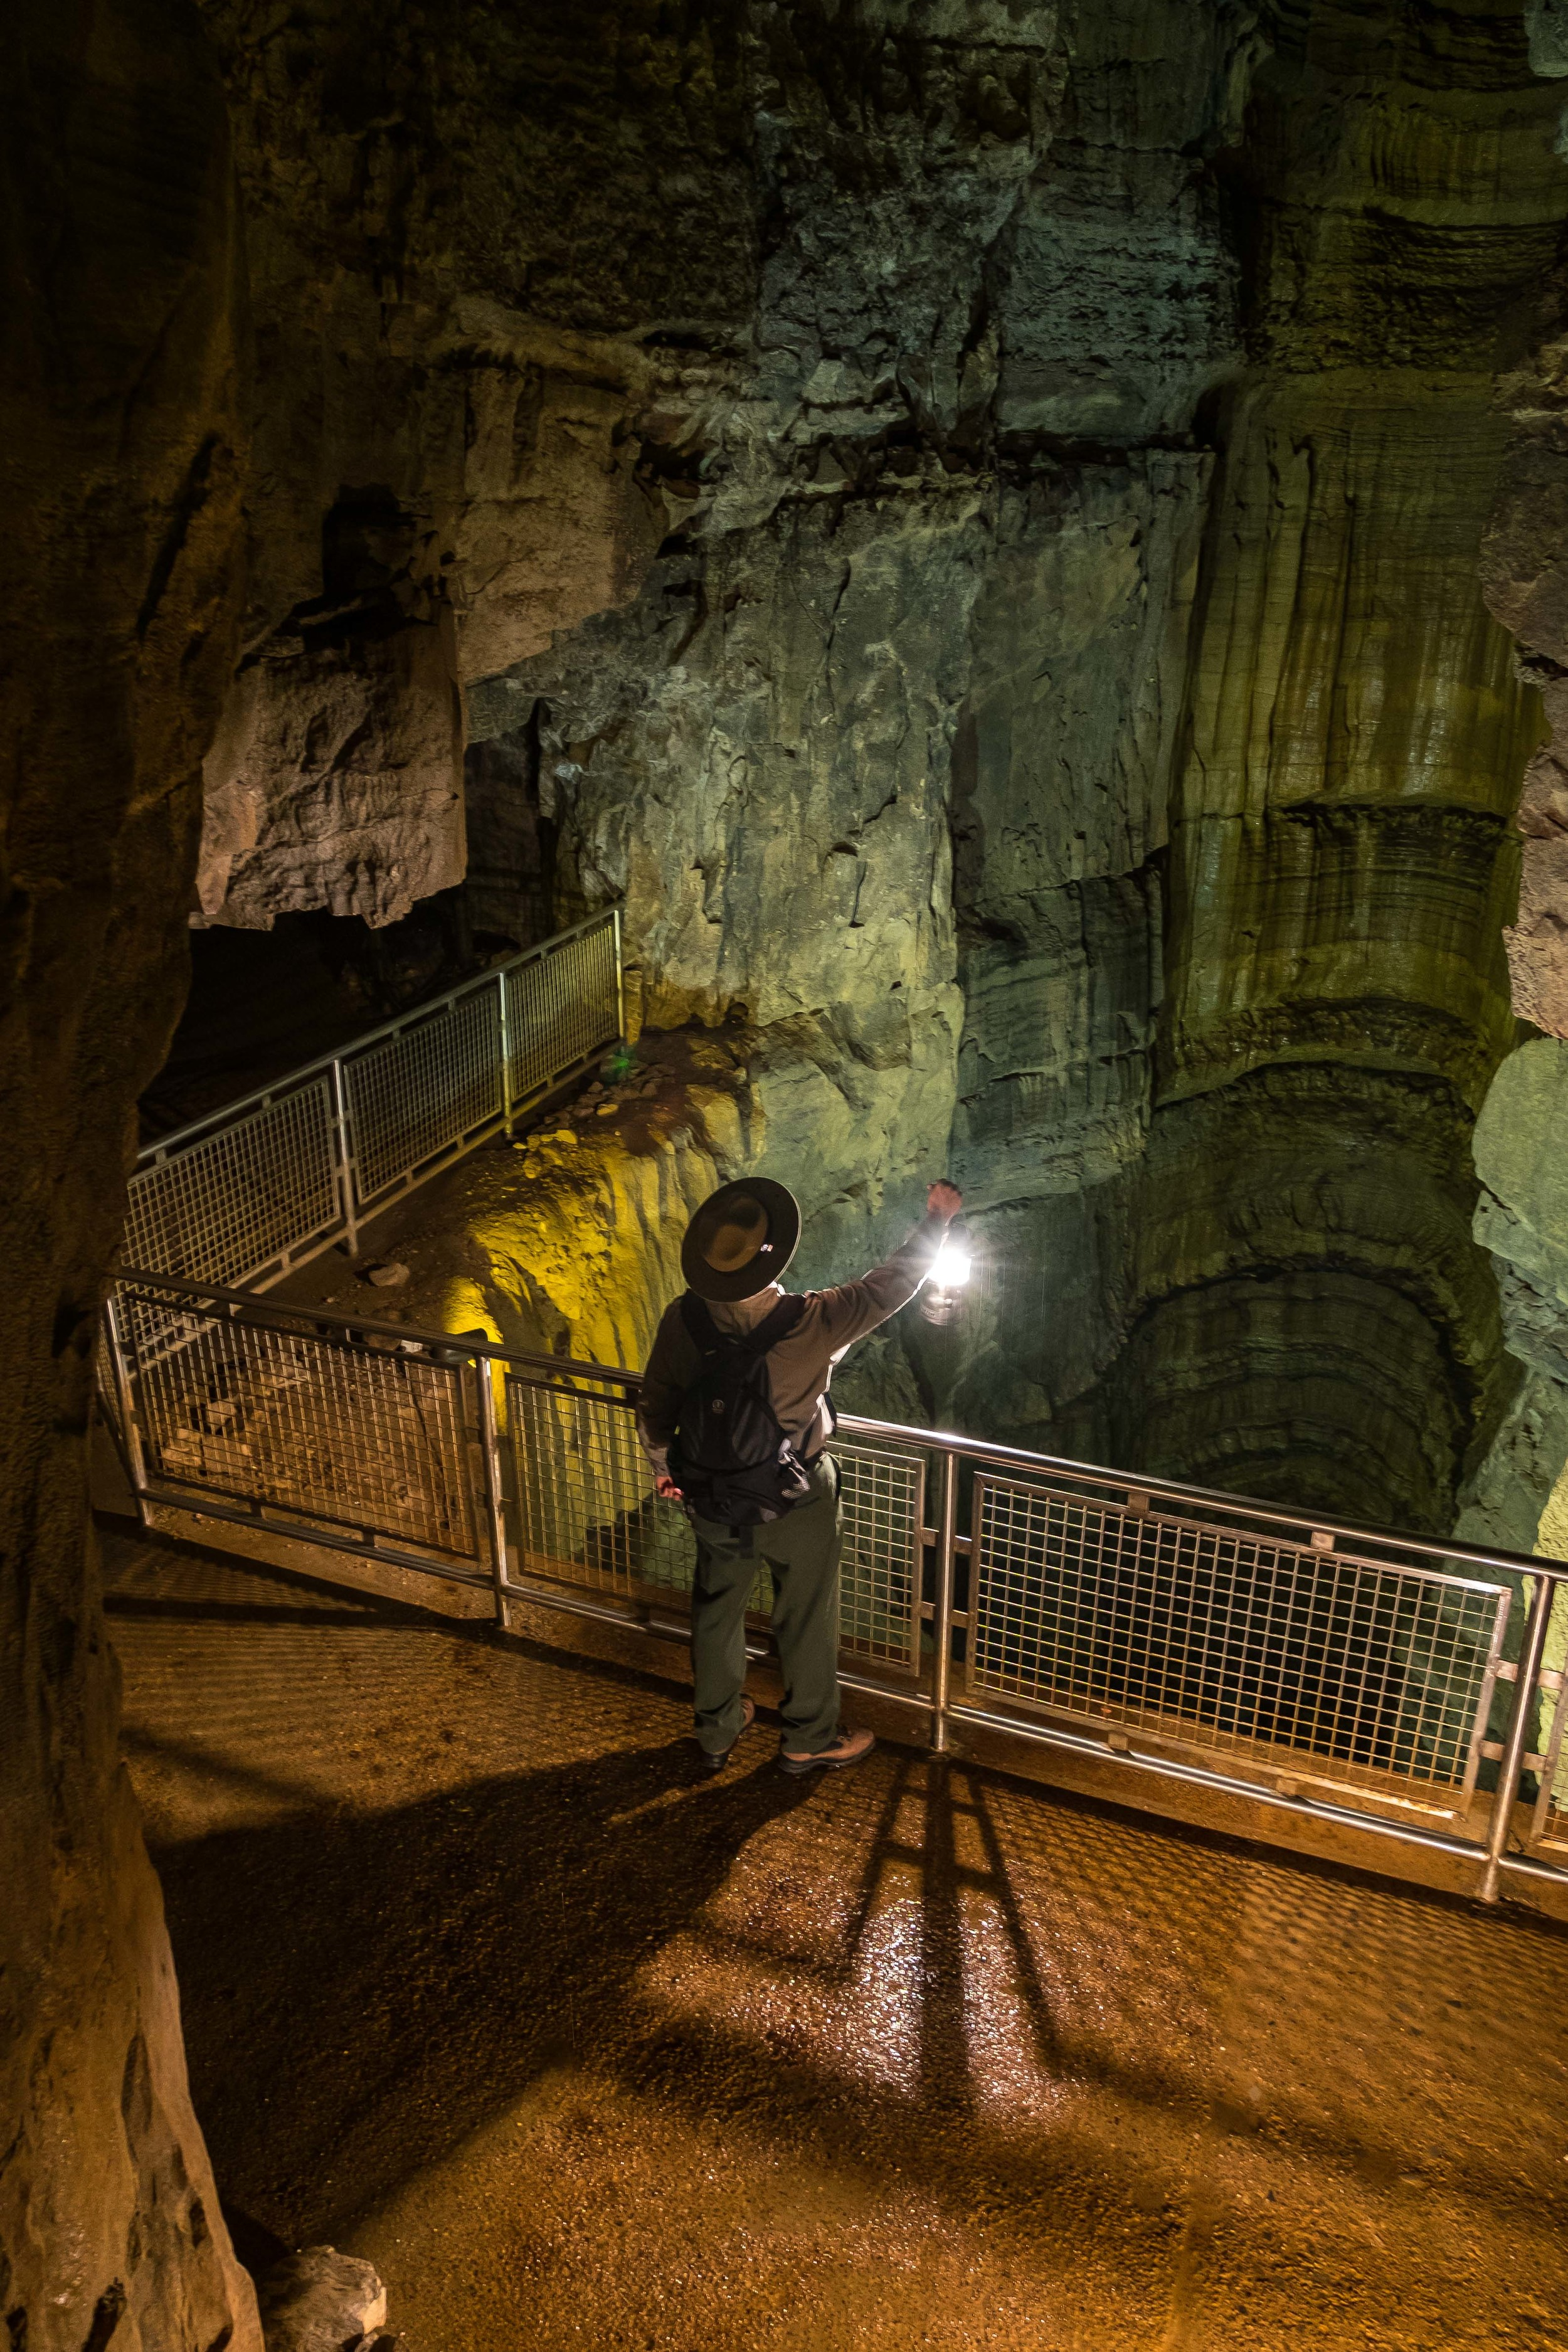 This is one of my favorite images in the cave....